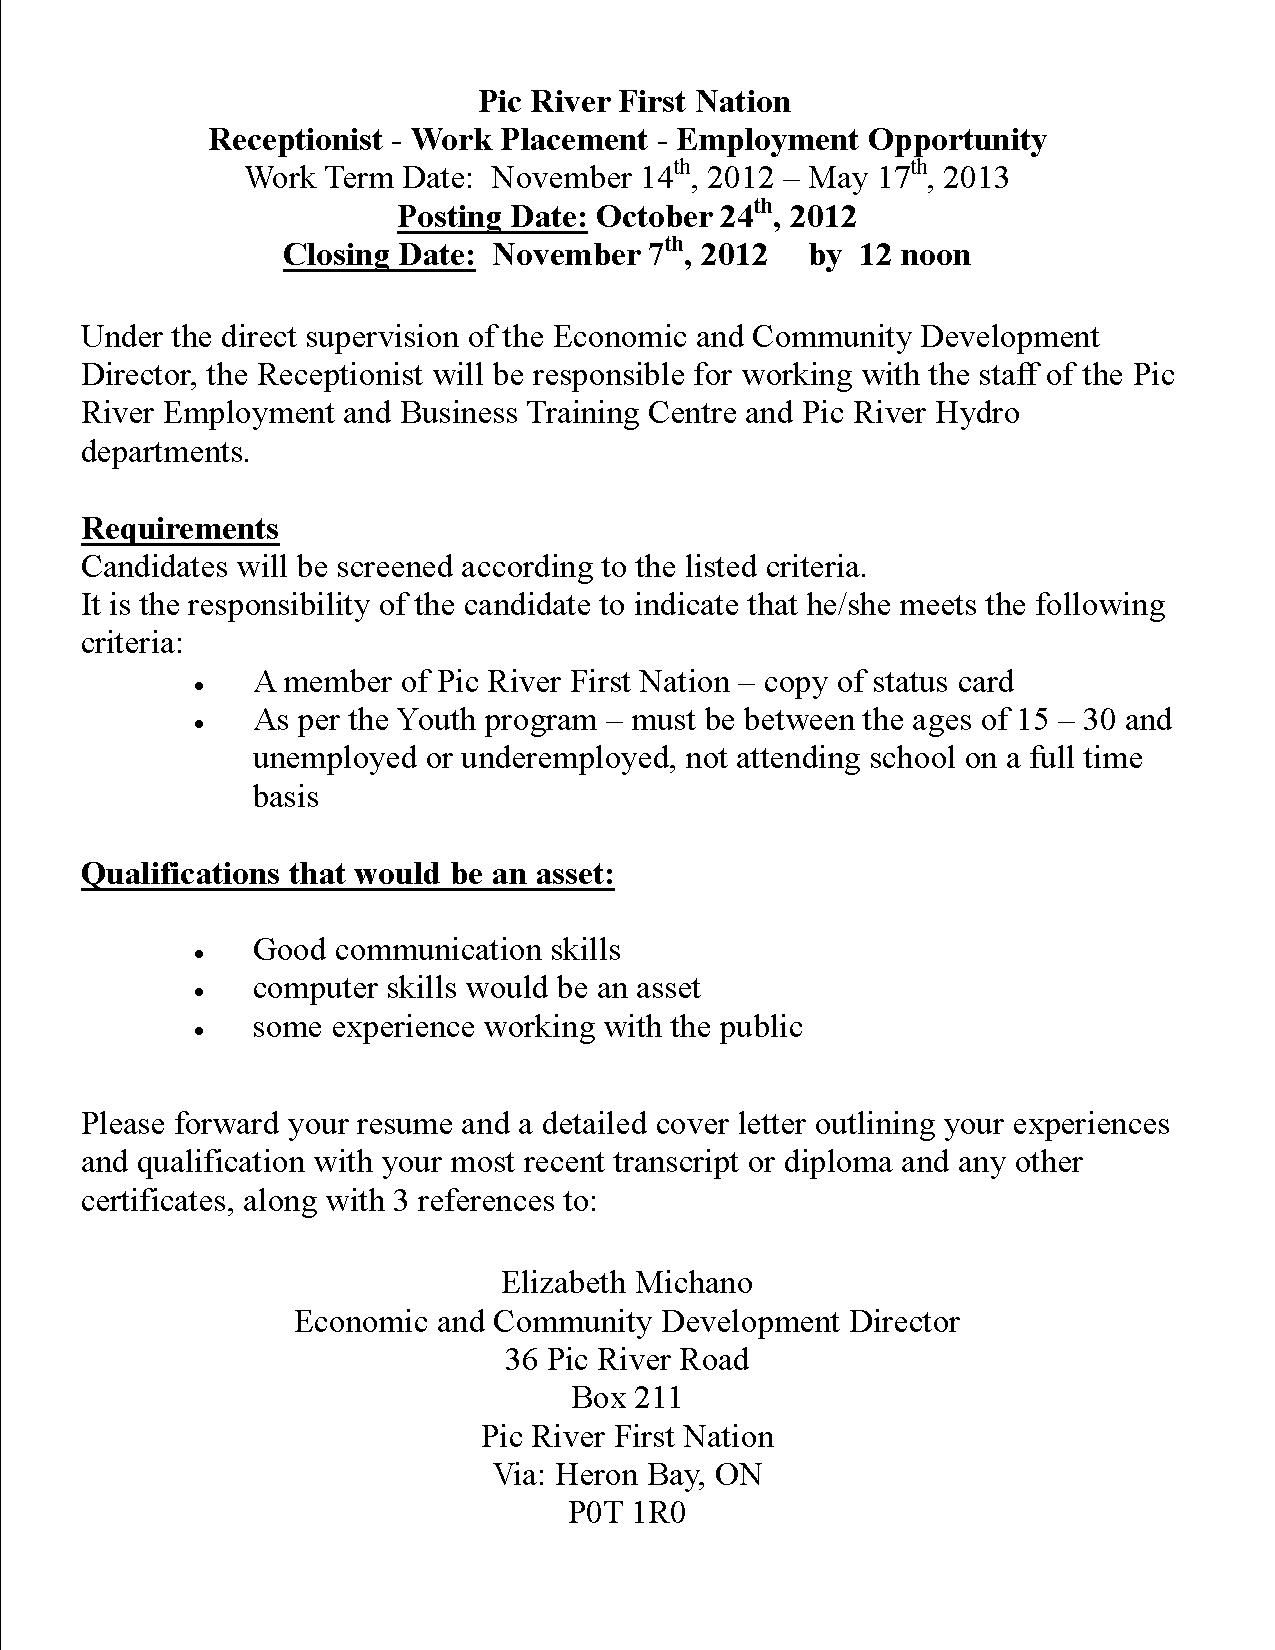 Receptionist Resume Samples Medical Office Receptionist Resume Objective Sample Scholarship